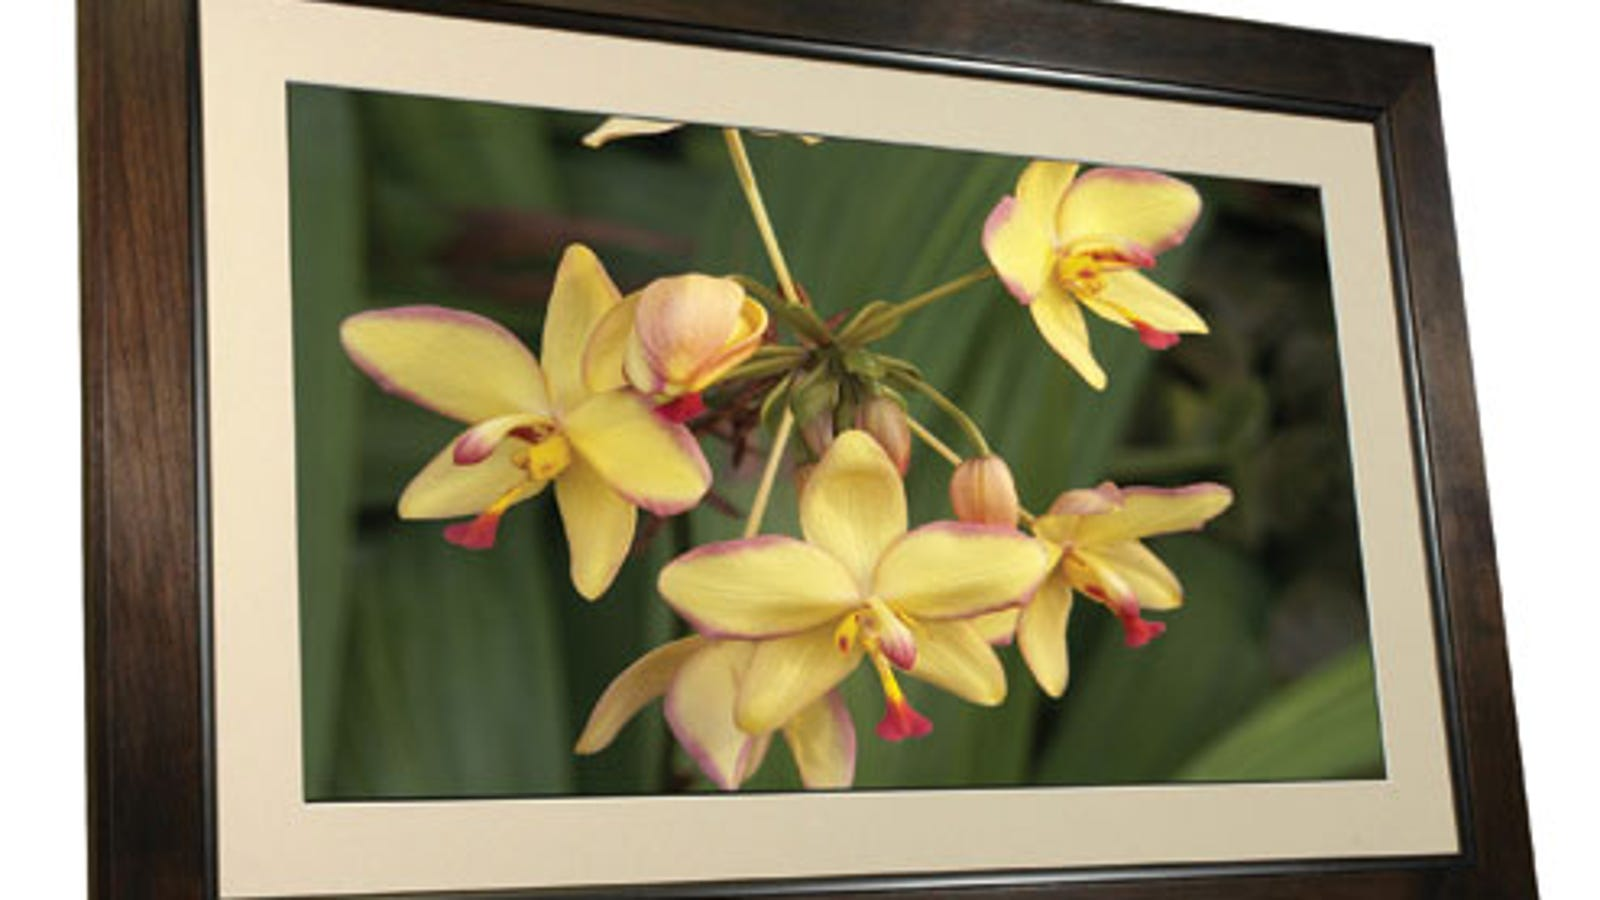 Smartpants 32-inch Wi-Fi Picture Frame...Can We Just Call It a TV?